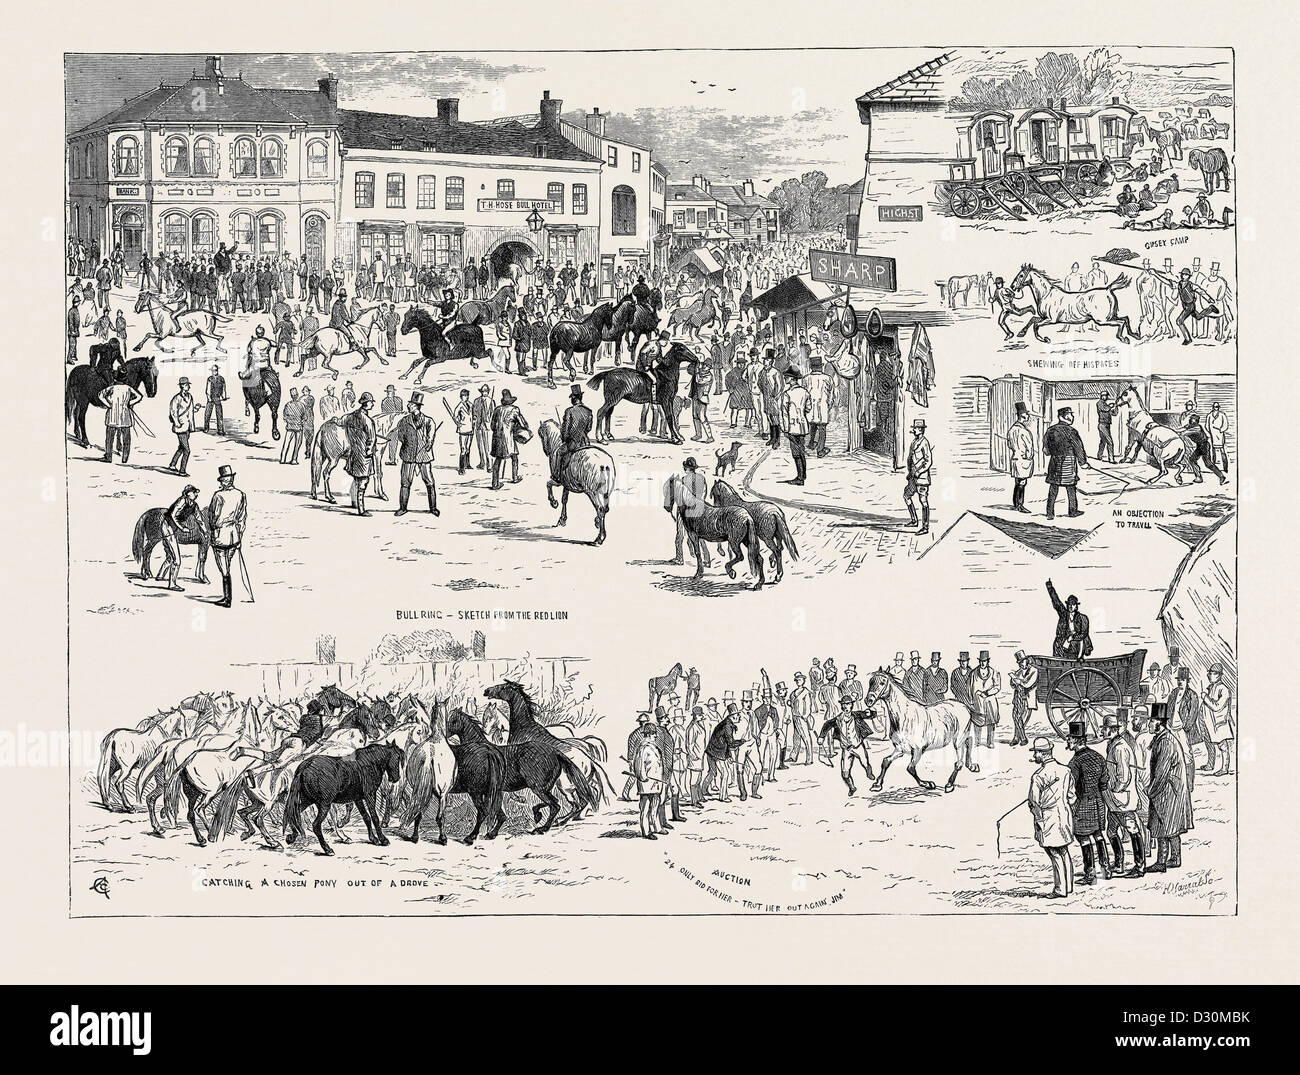 JOTTINGS AT THE HORNCASTLE HORSE FAIR, AUGUST 22, 1874 - Stock Image